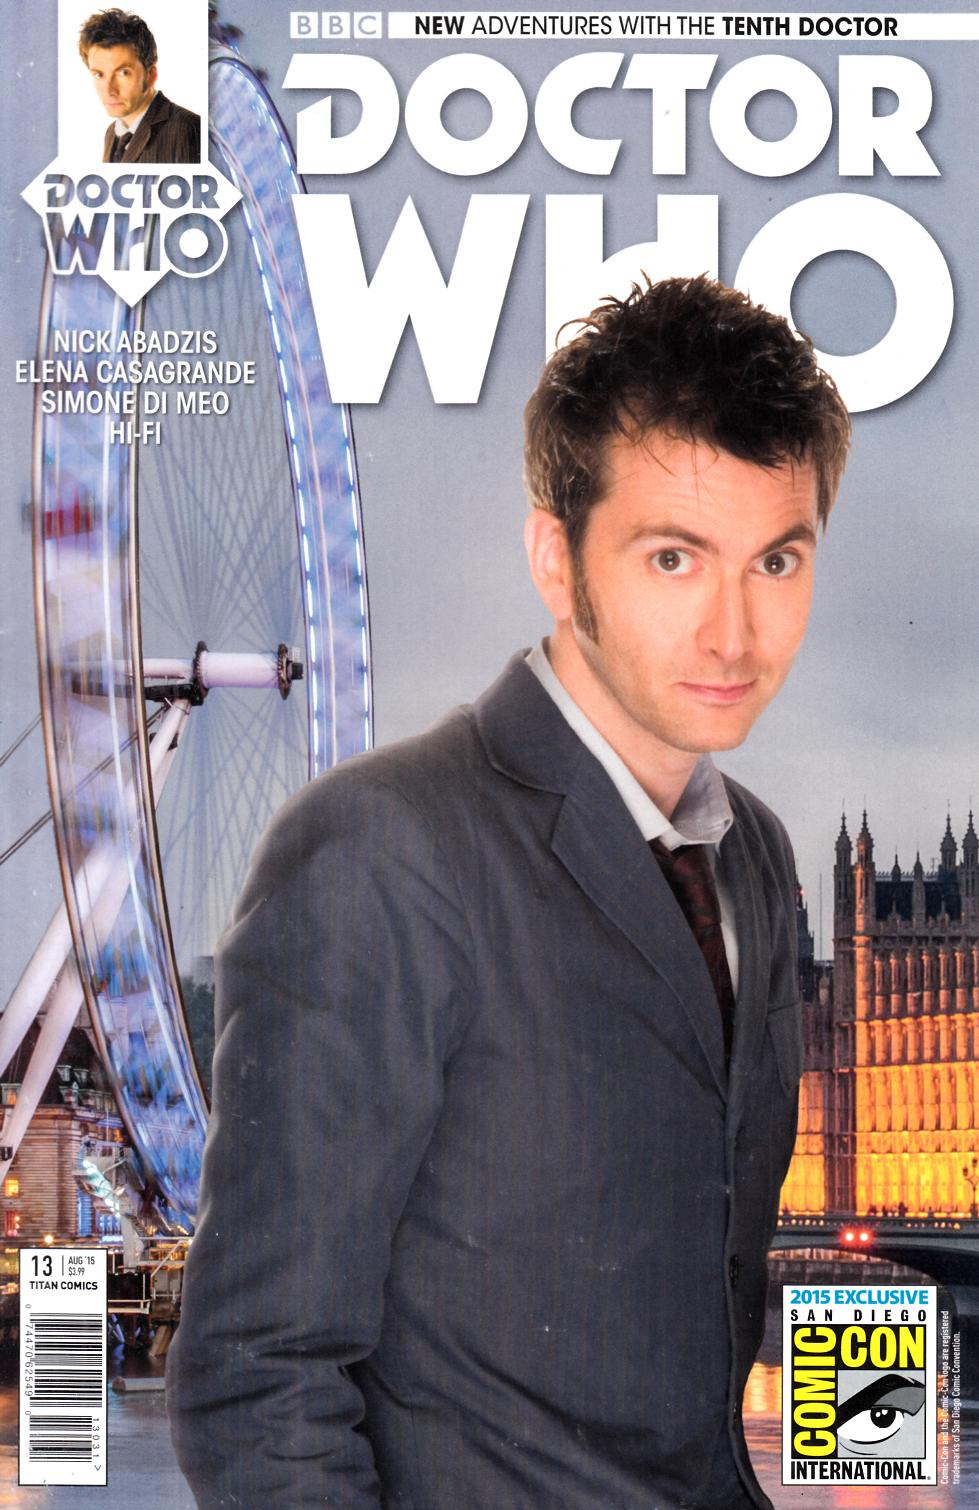 Doctor Who 10th Doctor #13 SDCC Exclusive Cover [Titan Comic] THUMBNAIL